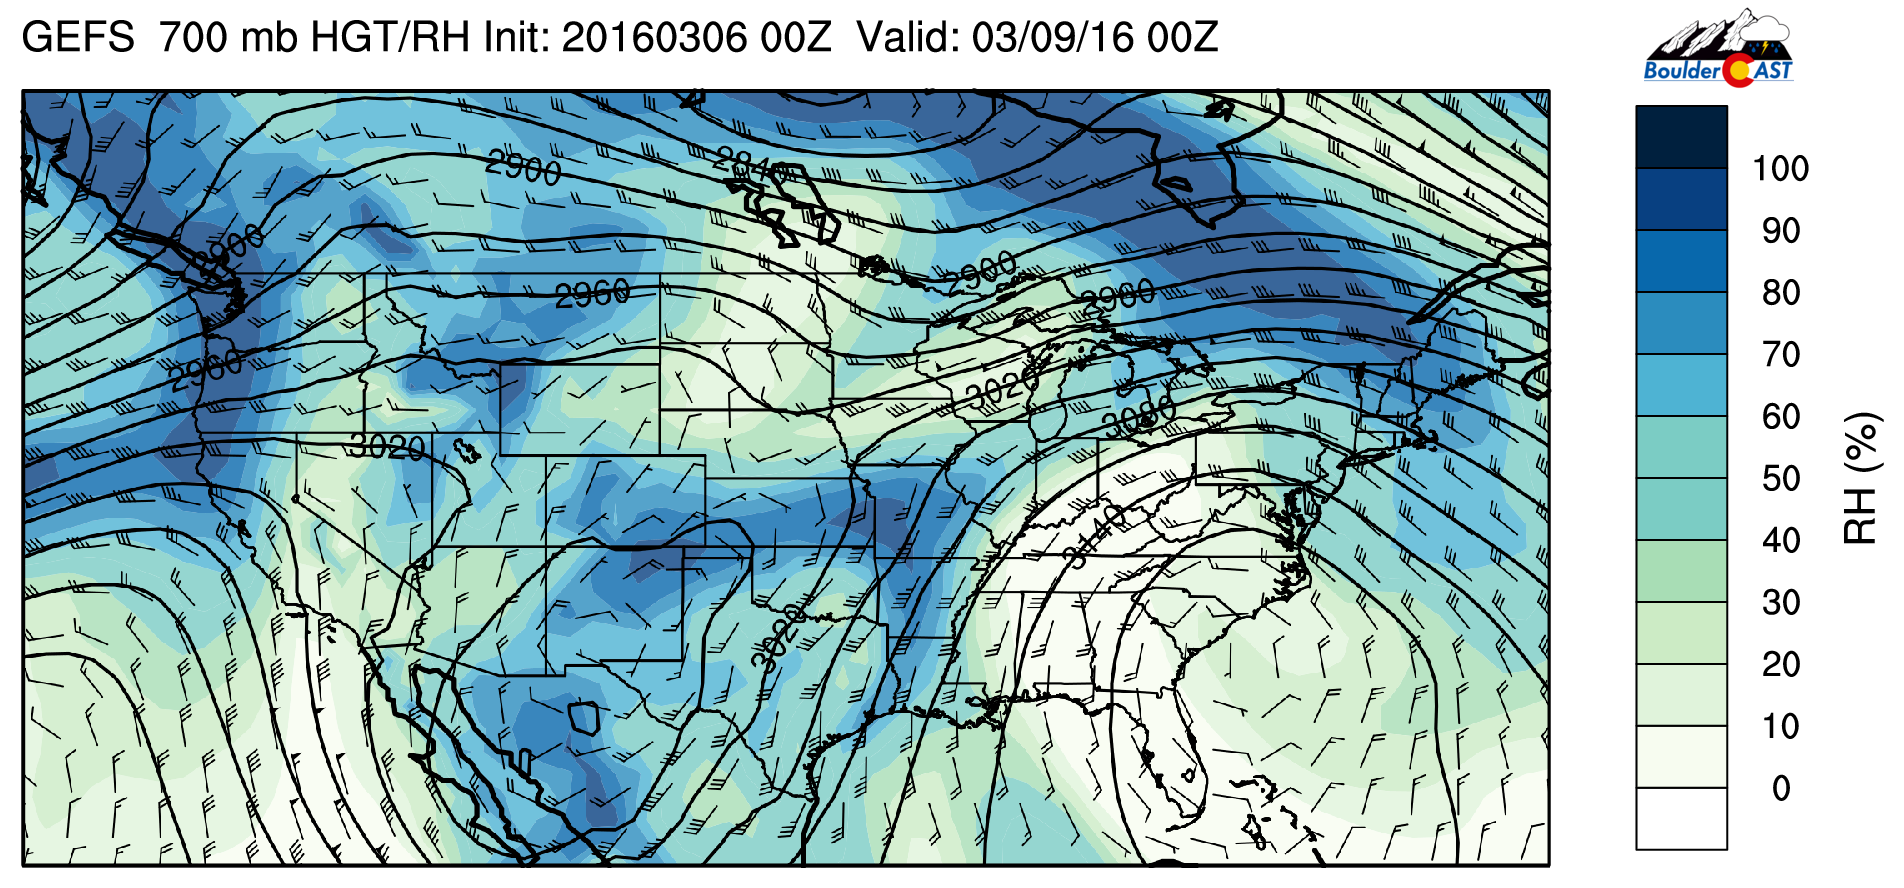 GEFS ensemble 700 mb relative humidity for Tuesday